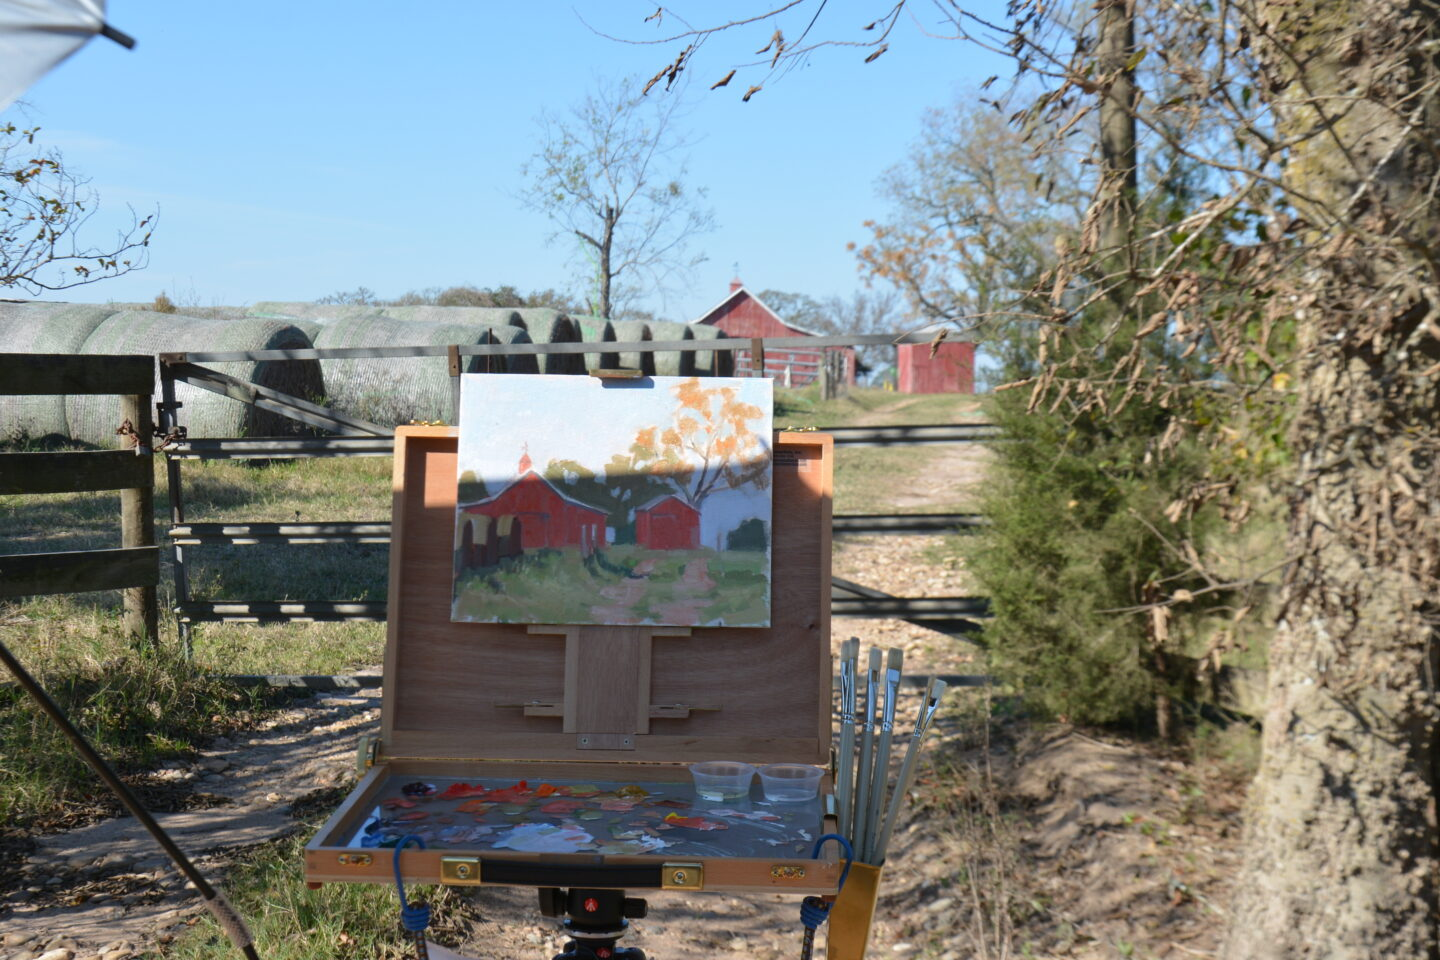 Plein air painting a red barn.